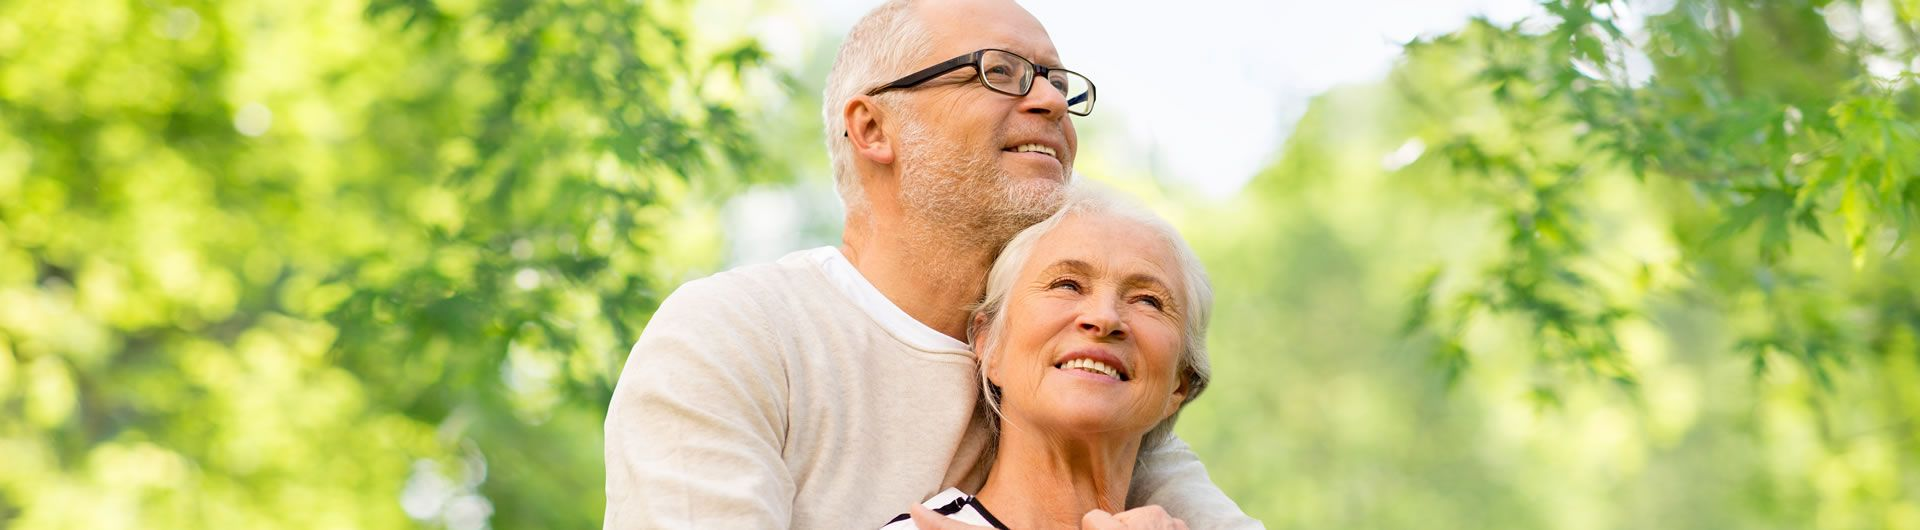 Happy mature couple with natural green background